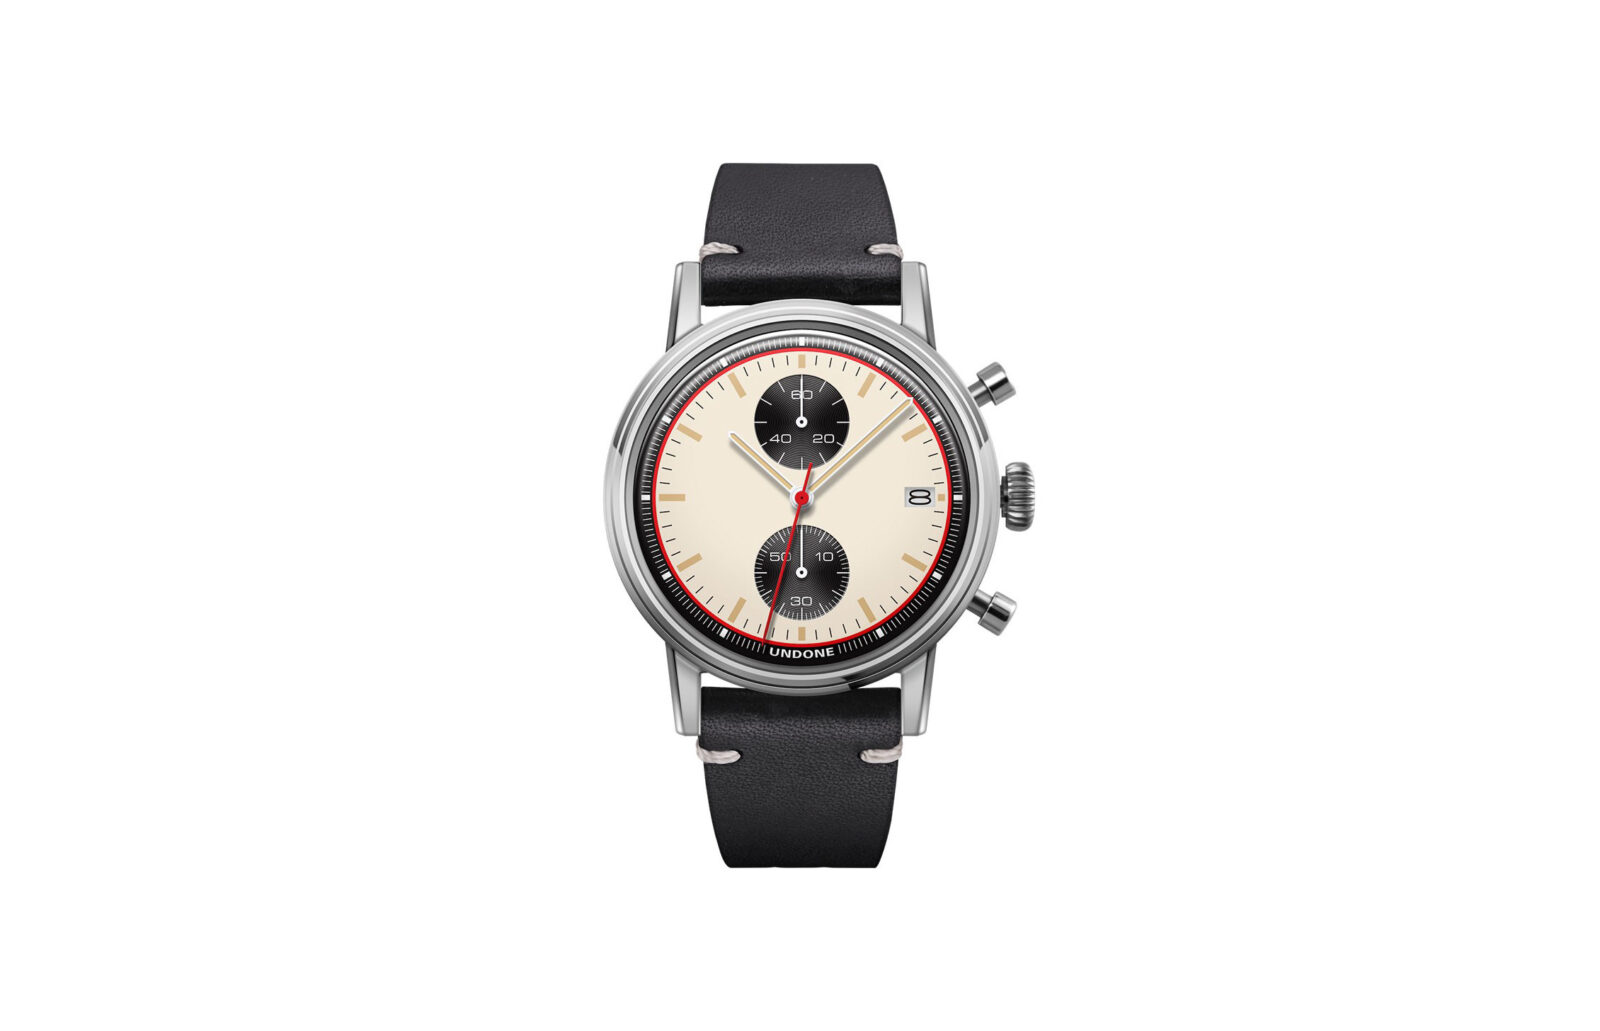 The Undone Newman Chronograph - An Unusually Affordable Daily-Wearable